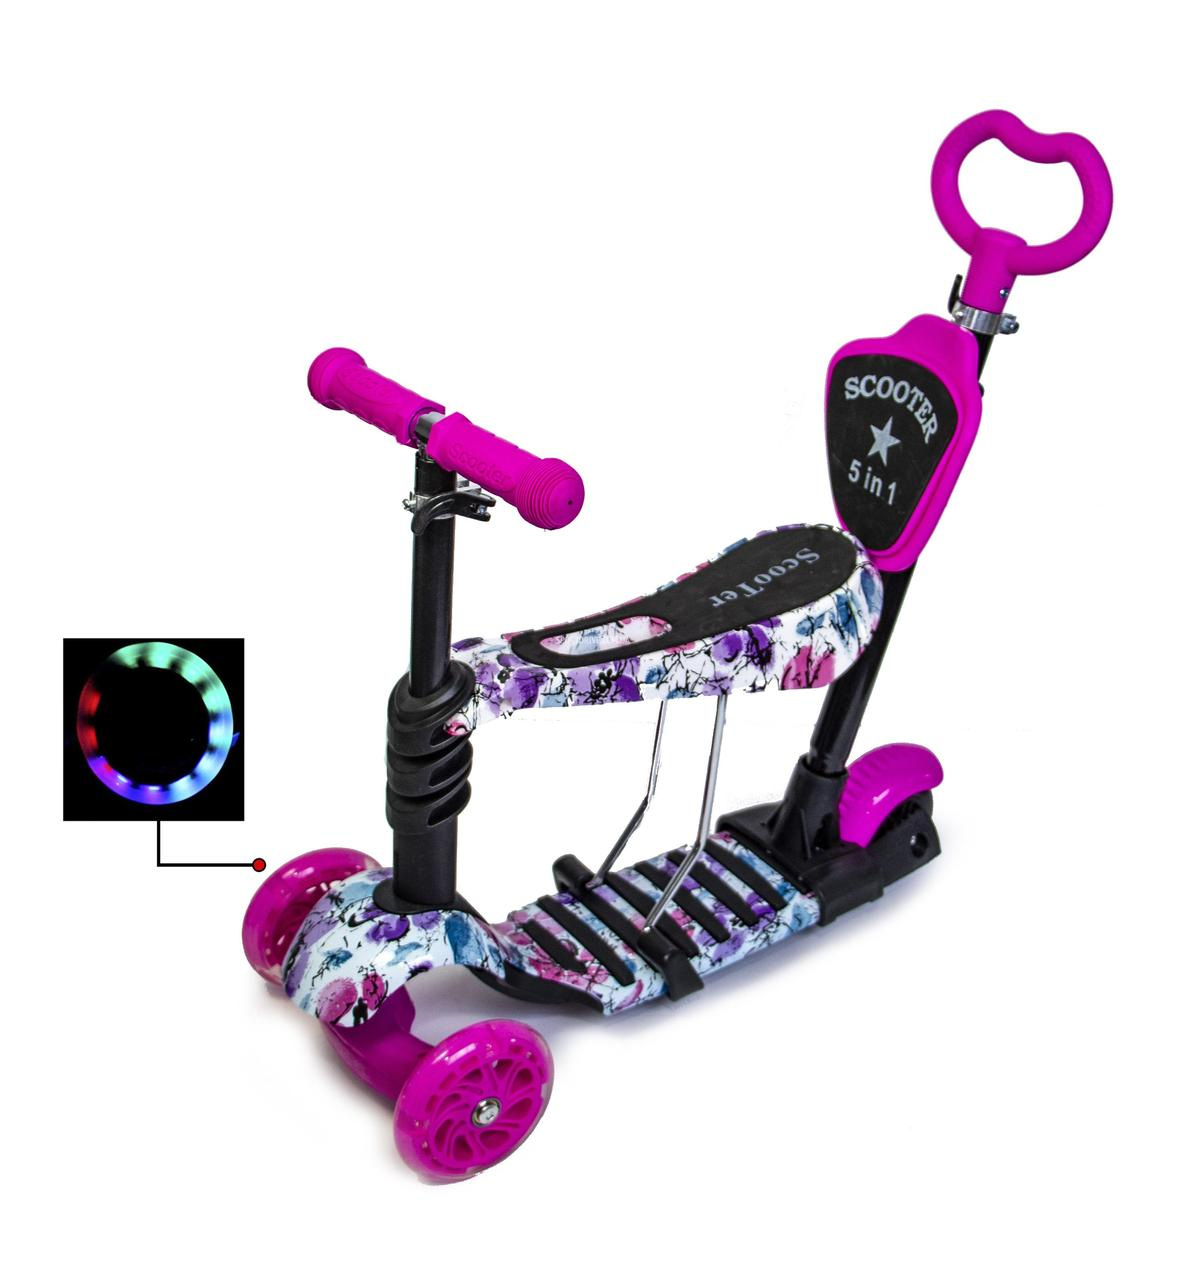 """Самокат Scooter 5in1 """"Маки"""""""